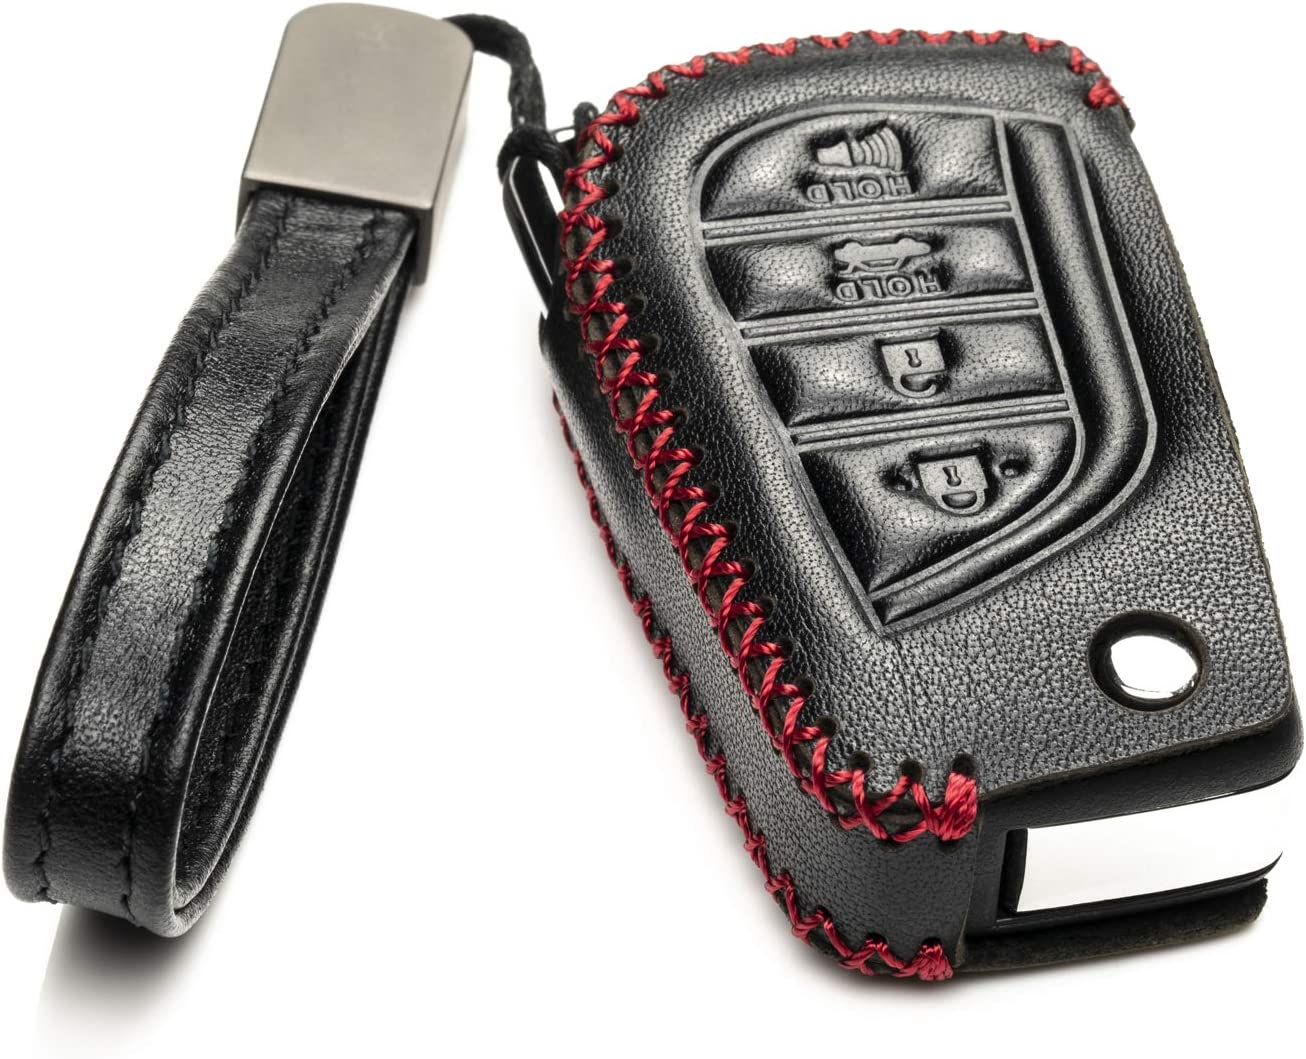 Vitodeco Genuine Leather Flip Key Fob Case Cover Protector with Key Chain for 2018-2021 Toyota Camry 4-Button, Black Corolla